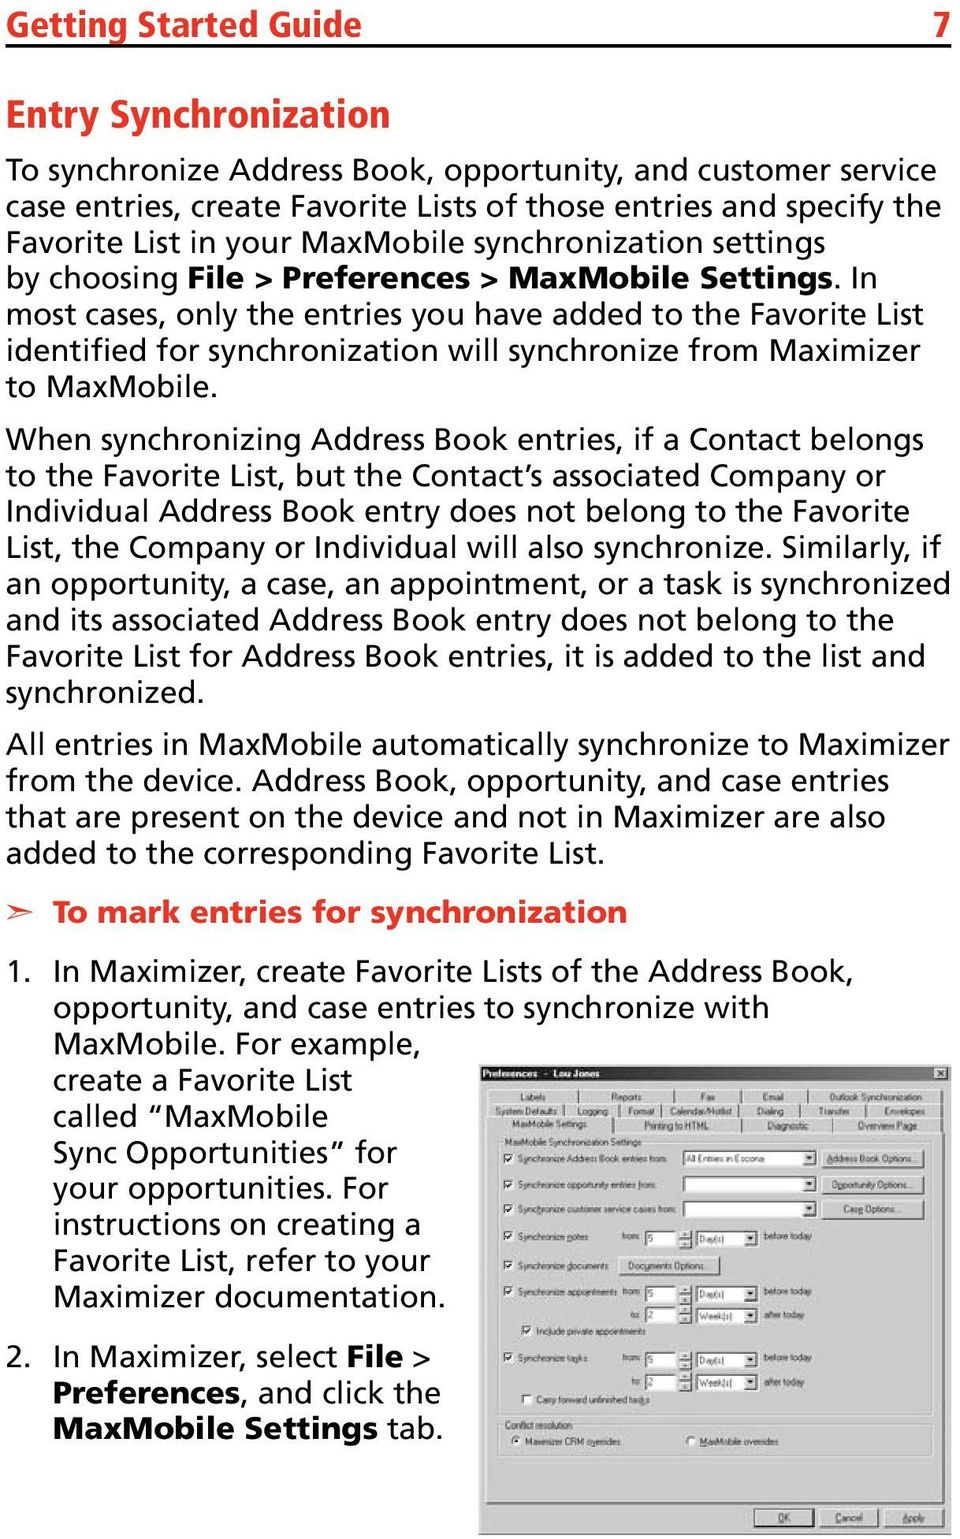 In most cases, only the entries you have added to the Favorite List identified for synchronization will synchronize from Maximizer to MaxMobile.